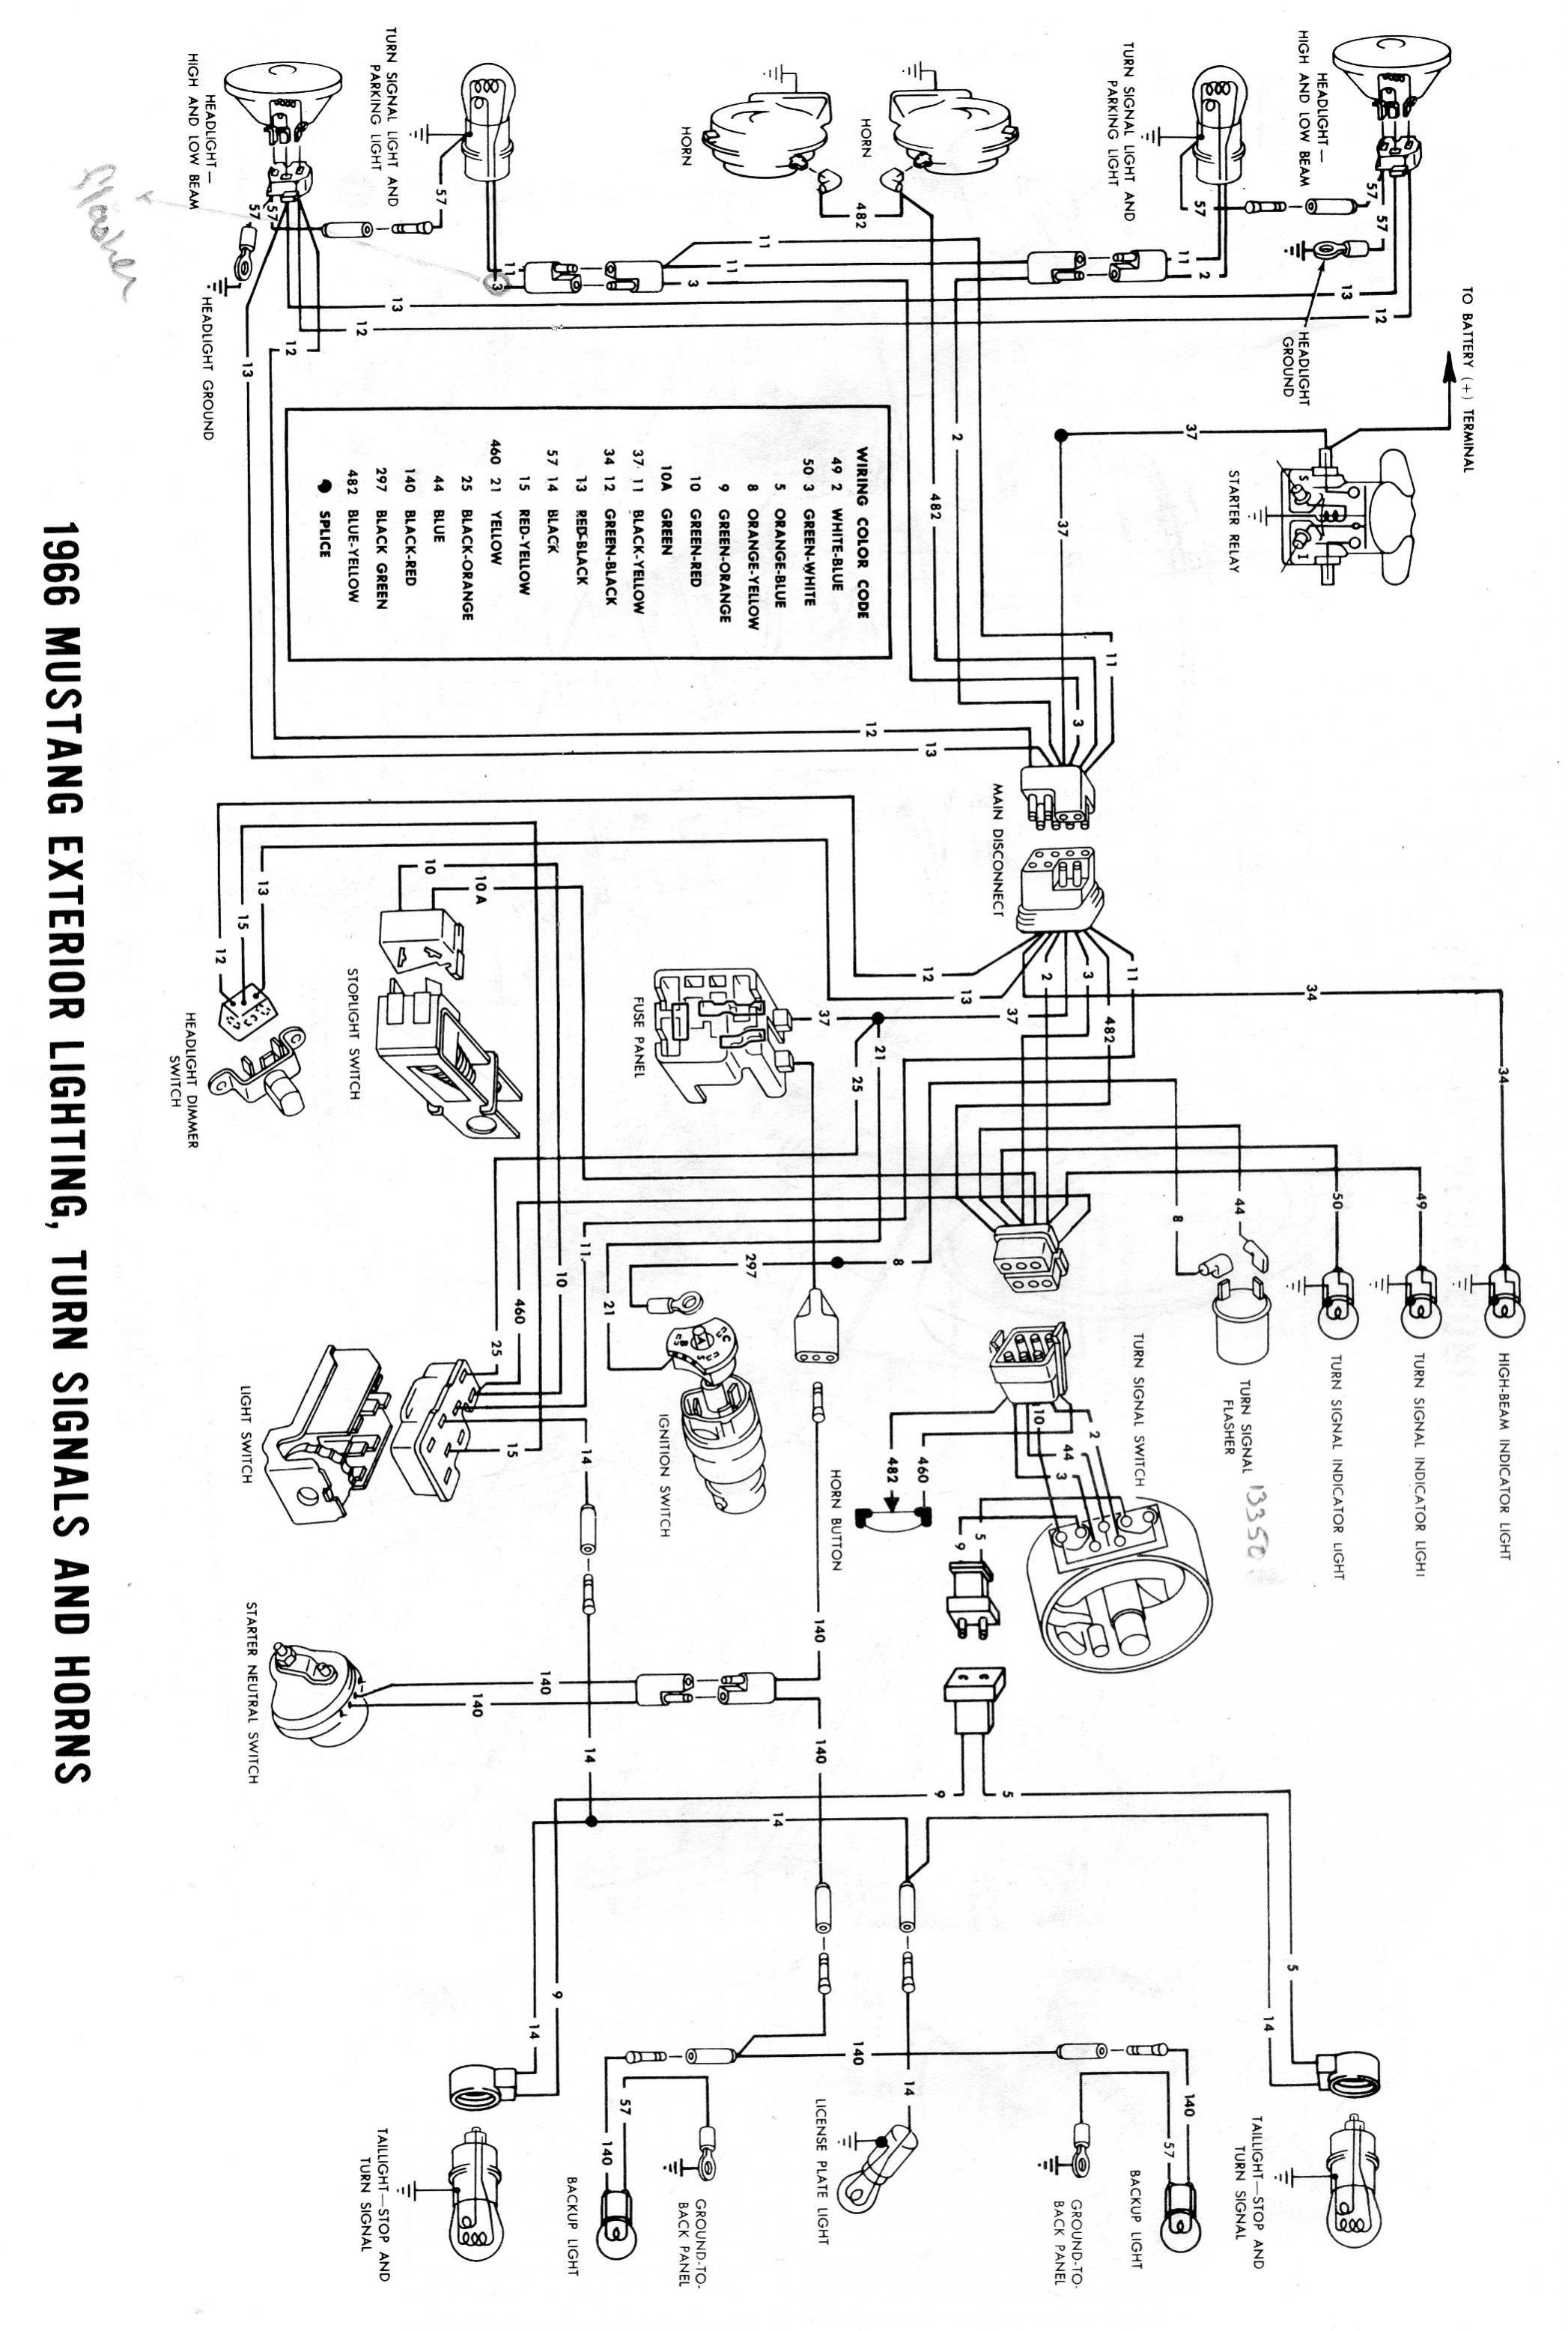 [SCHEMATICS_4NL]  1966 Mustang-Emergency flashers come on with turn indicator | Ford Mustang  Forum | 1966 Mustang Emergency Flasher Wiring Diagram |  | All Ford Mustangs